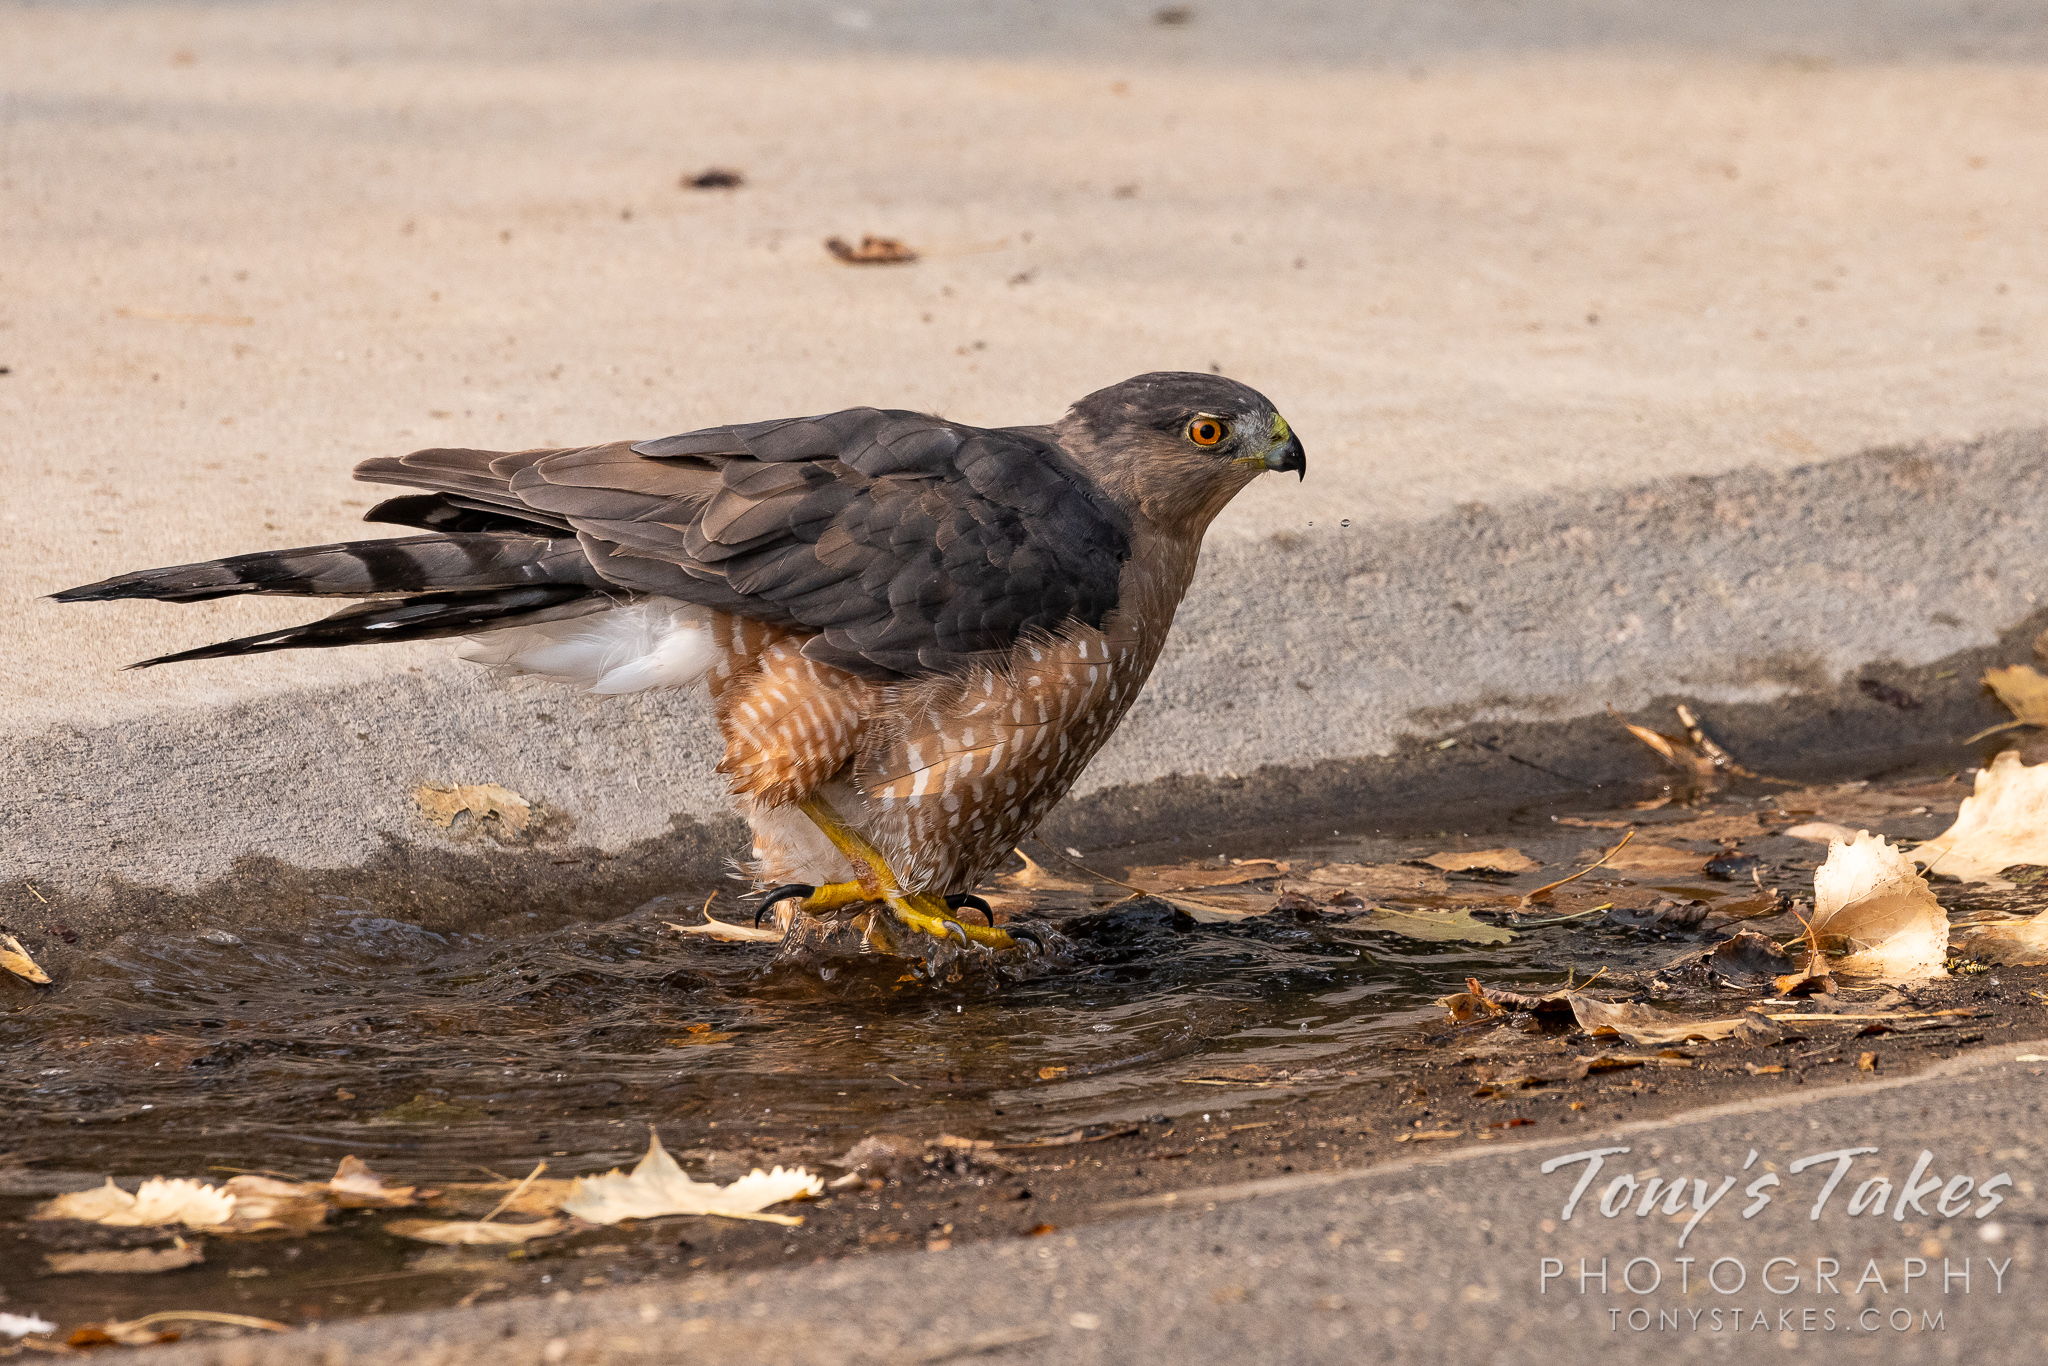 A Cooper's hawk bathes in water in a gutter. (© Tony's Takes)